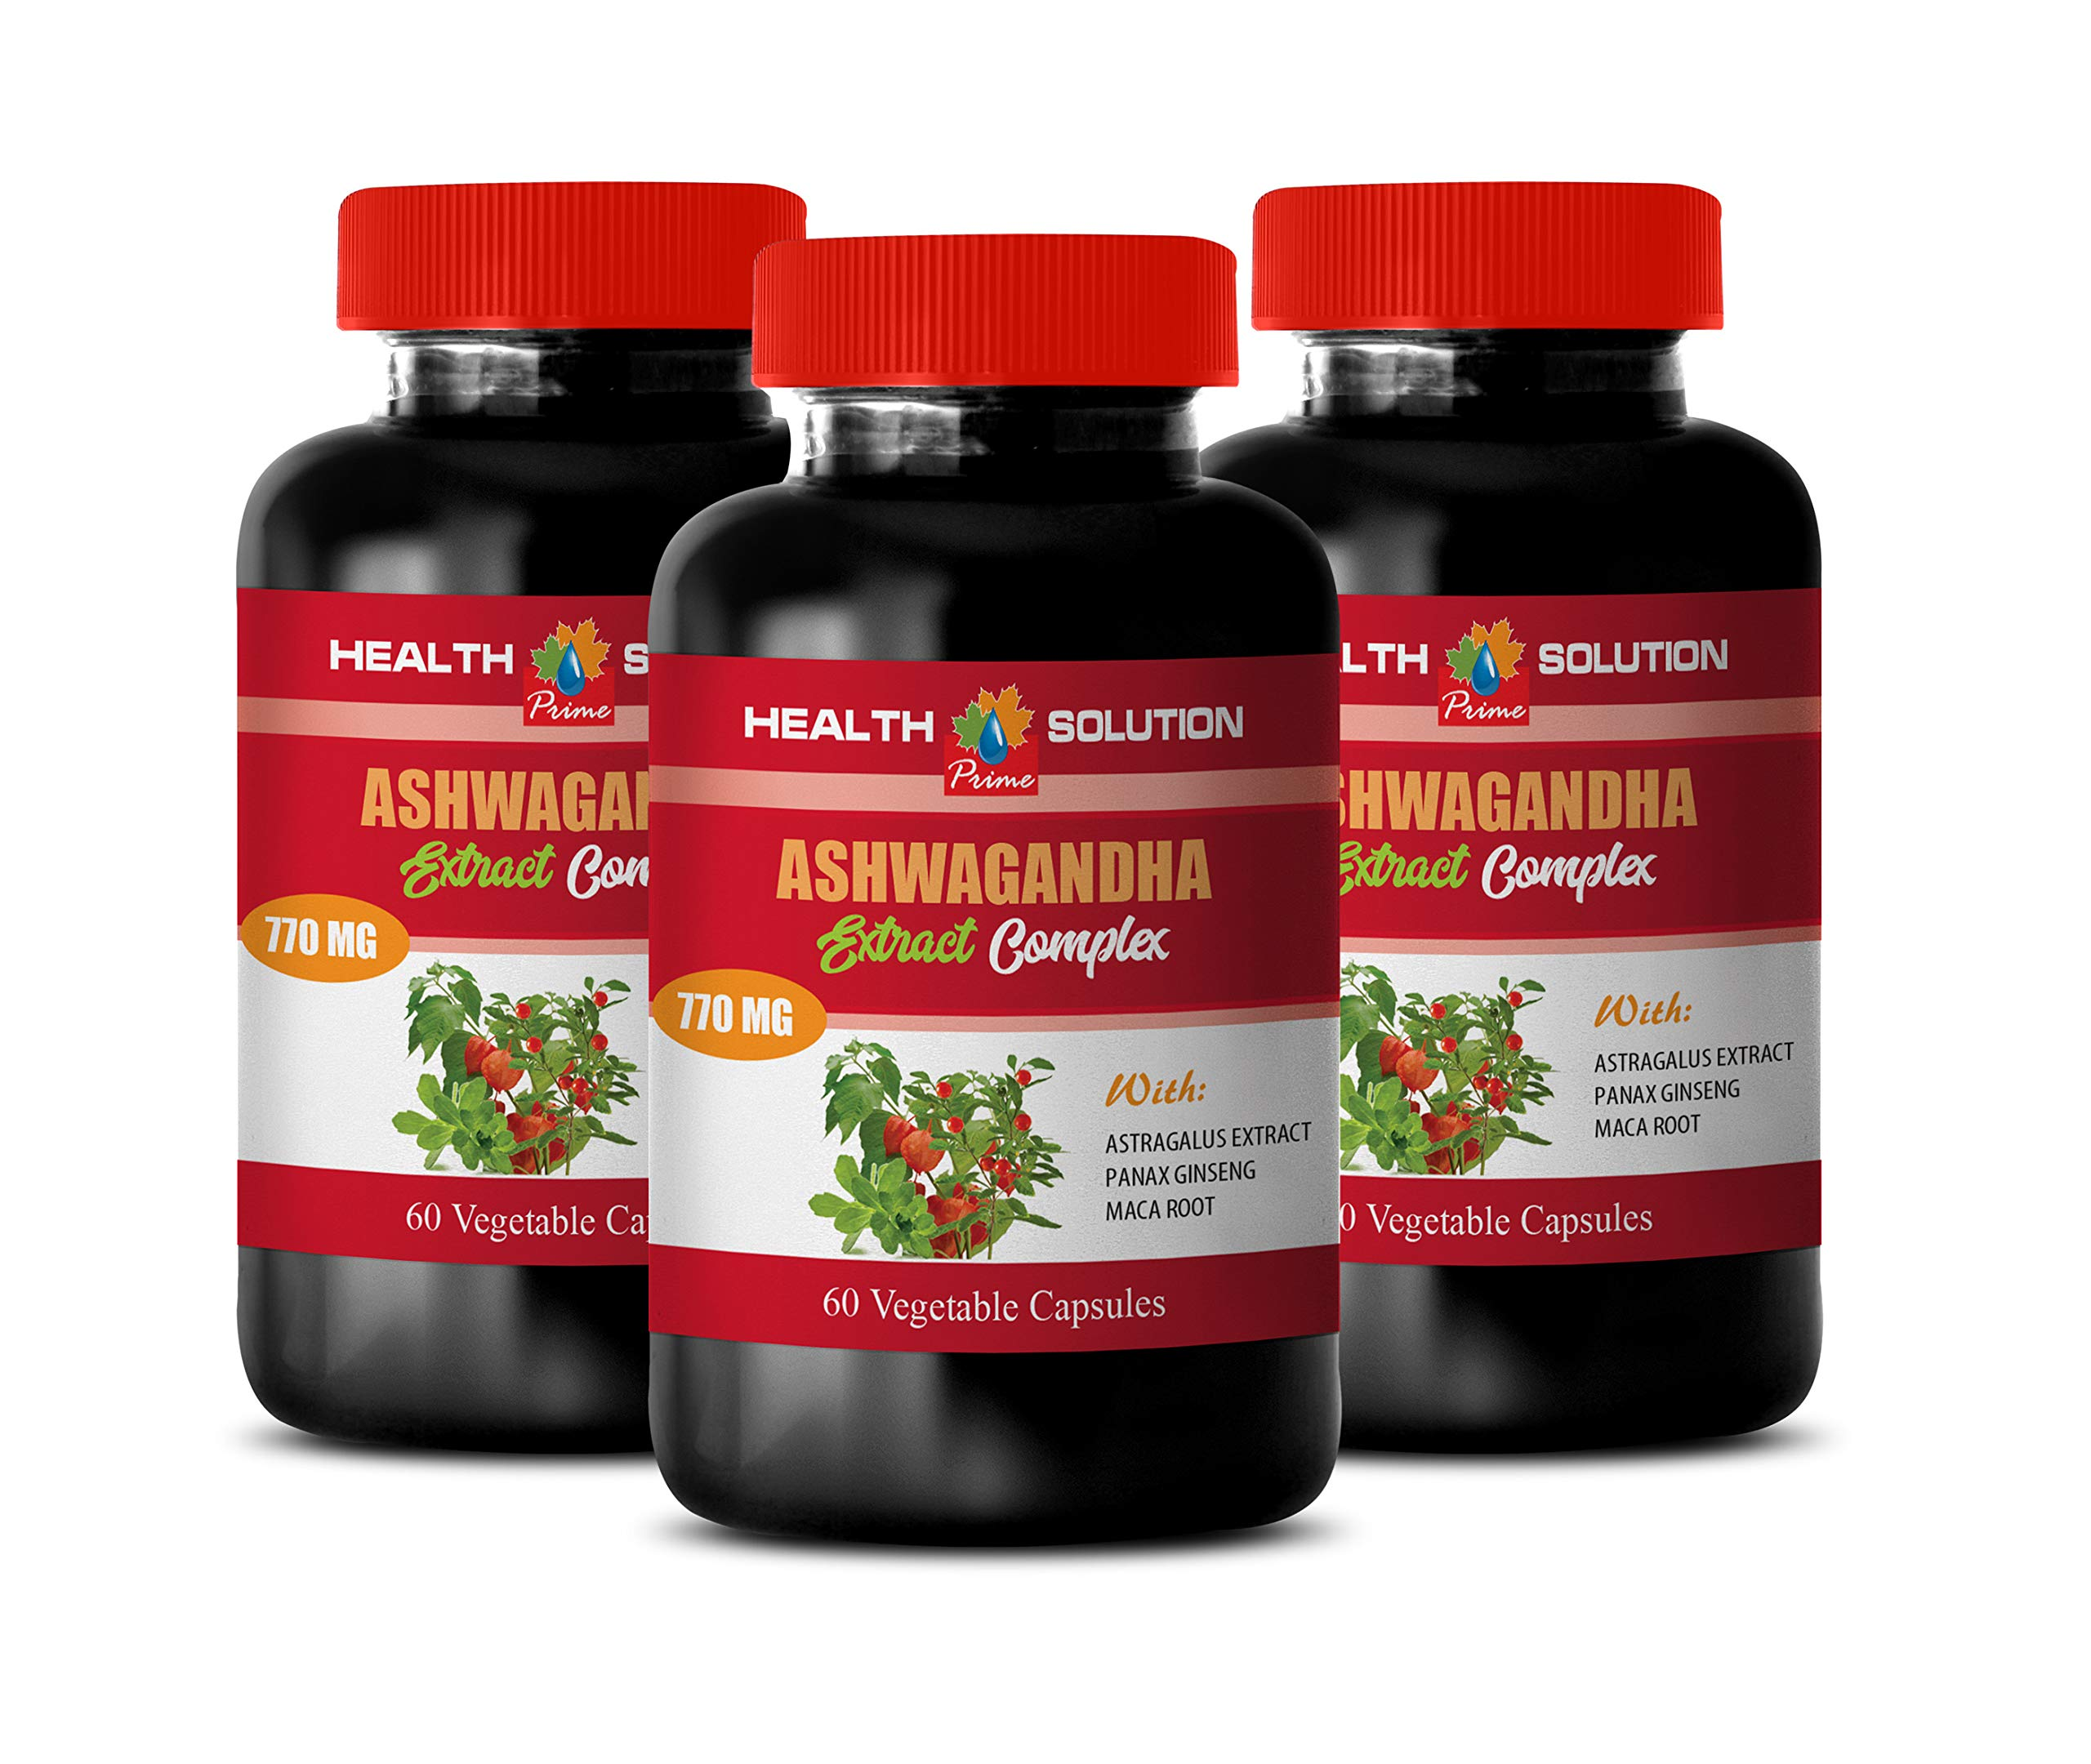 Anxiety Vitamins for Women - ASHWAGANDHA Advanced Complex - ashwagandha multivitamin - 3 Bottles 180 Capsules